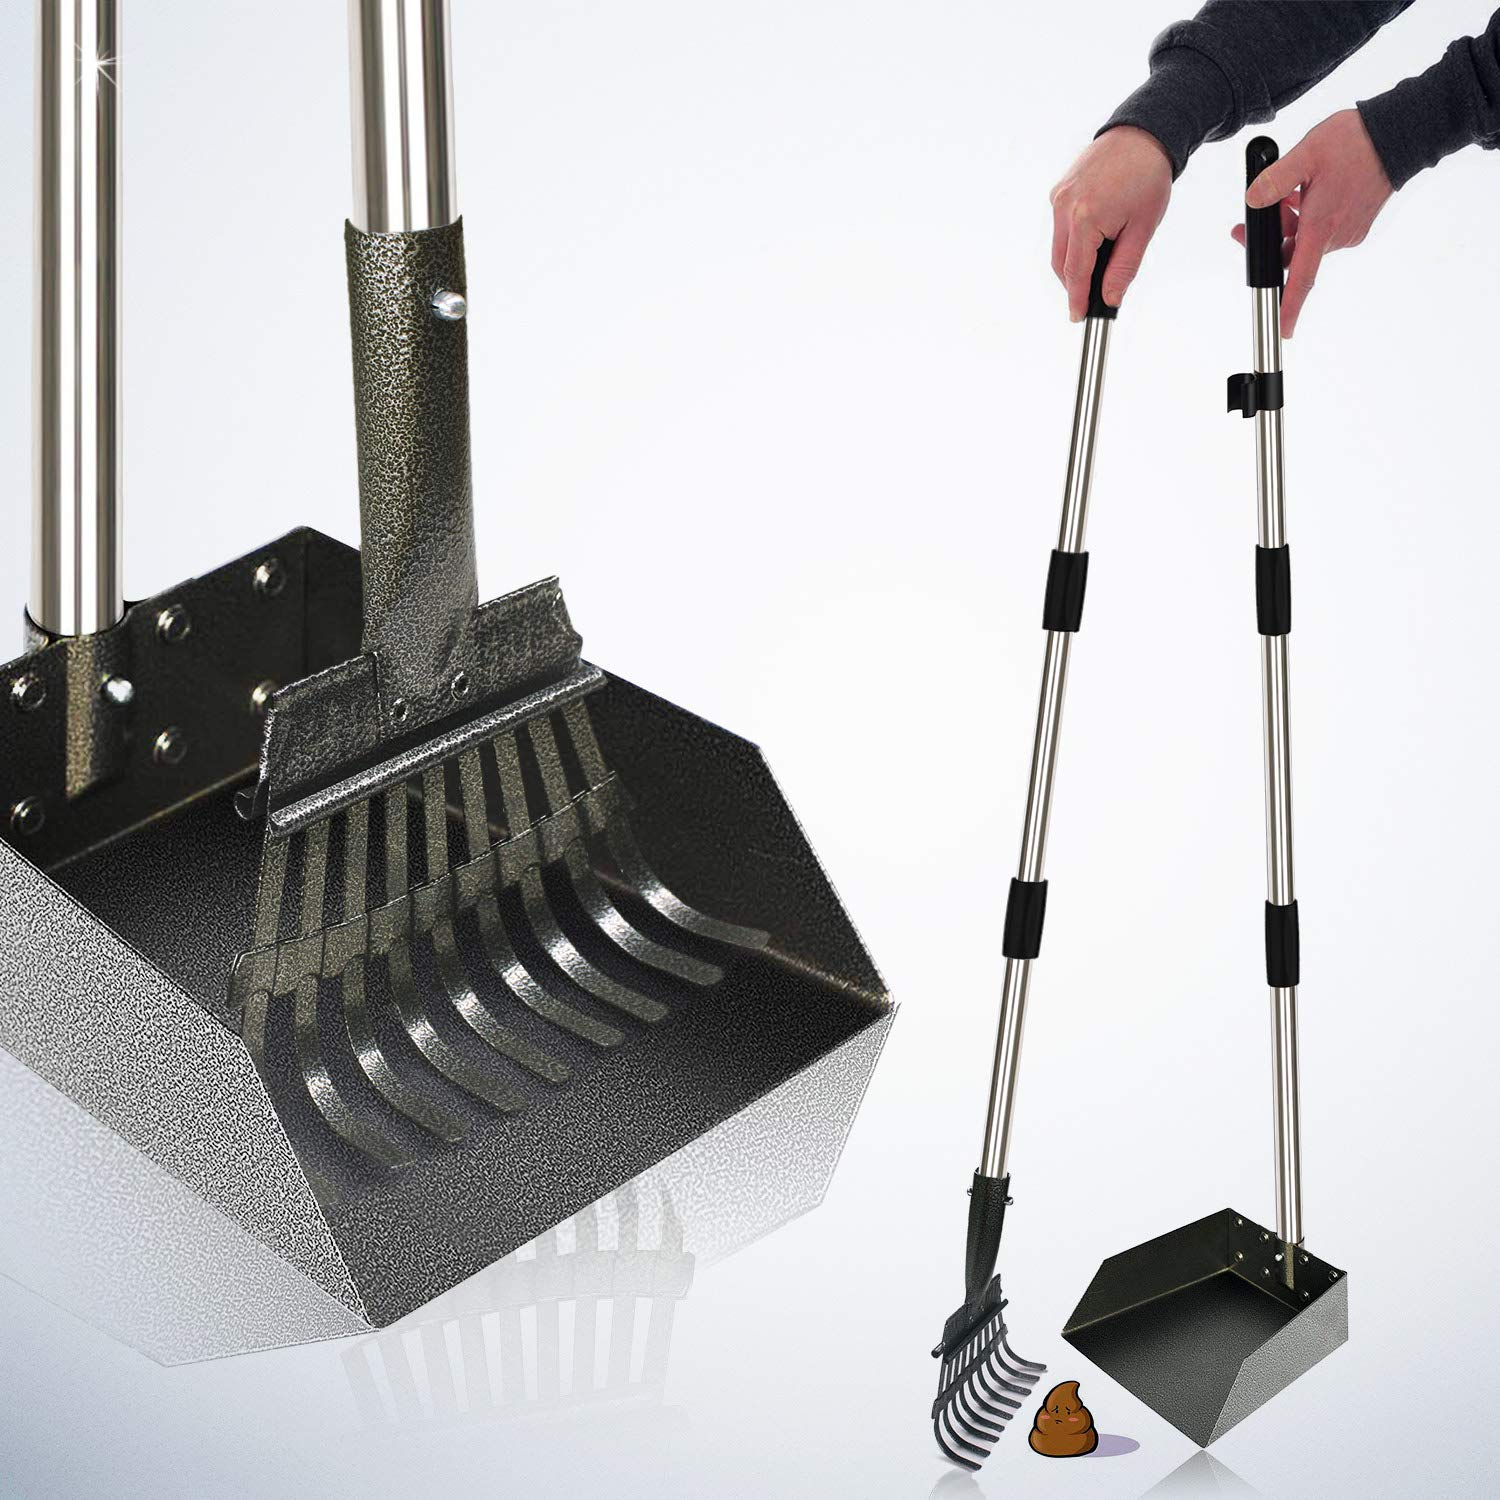 [2019 Upgraded] Metal Pooper Scooper Easy Pick Up Dog Poop Rake & Scoop Set with 37.4'' Long Handle No Bending Partable Yard Poop Scooper Perfect for Small to Large Dogs (Rake & Scoop, Black) by MigooPet